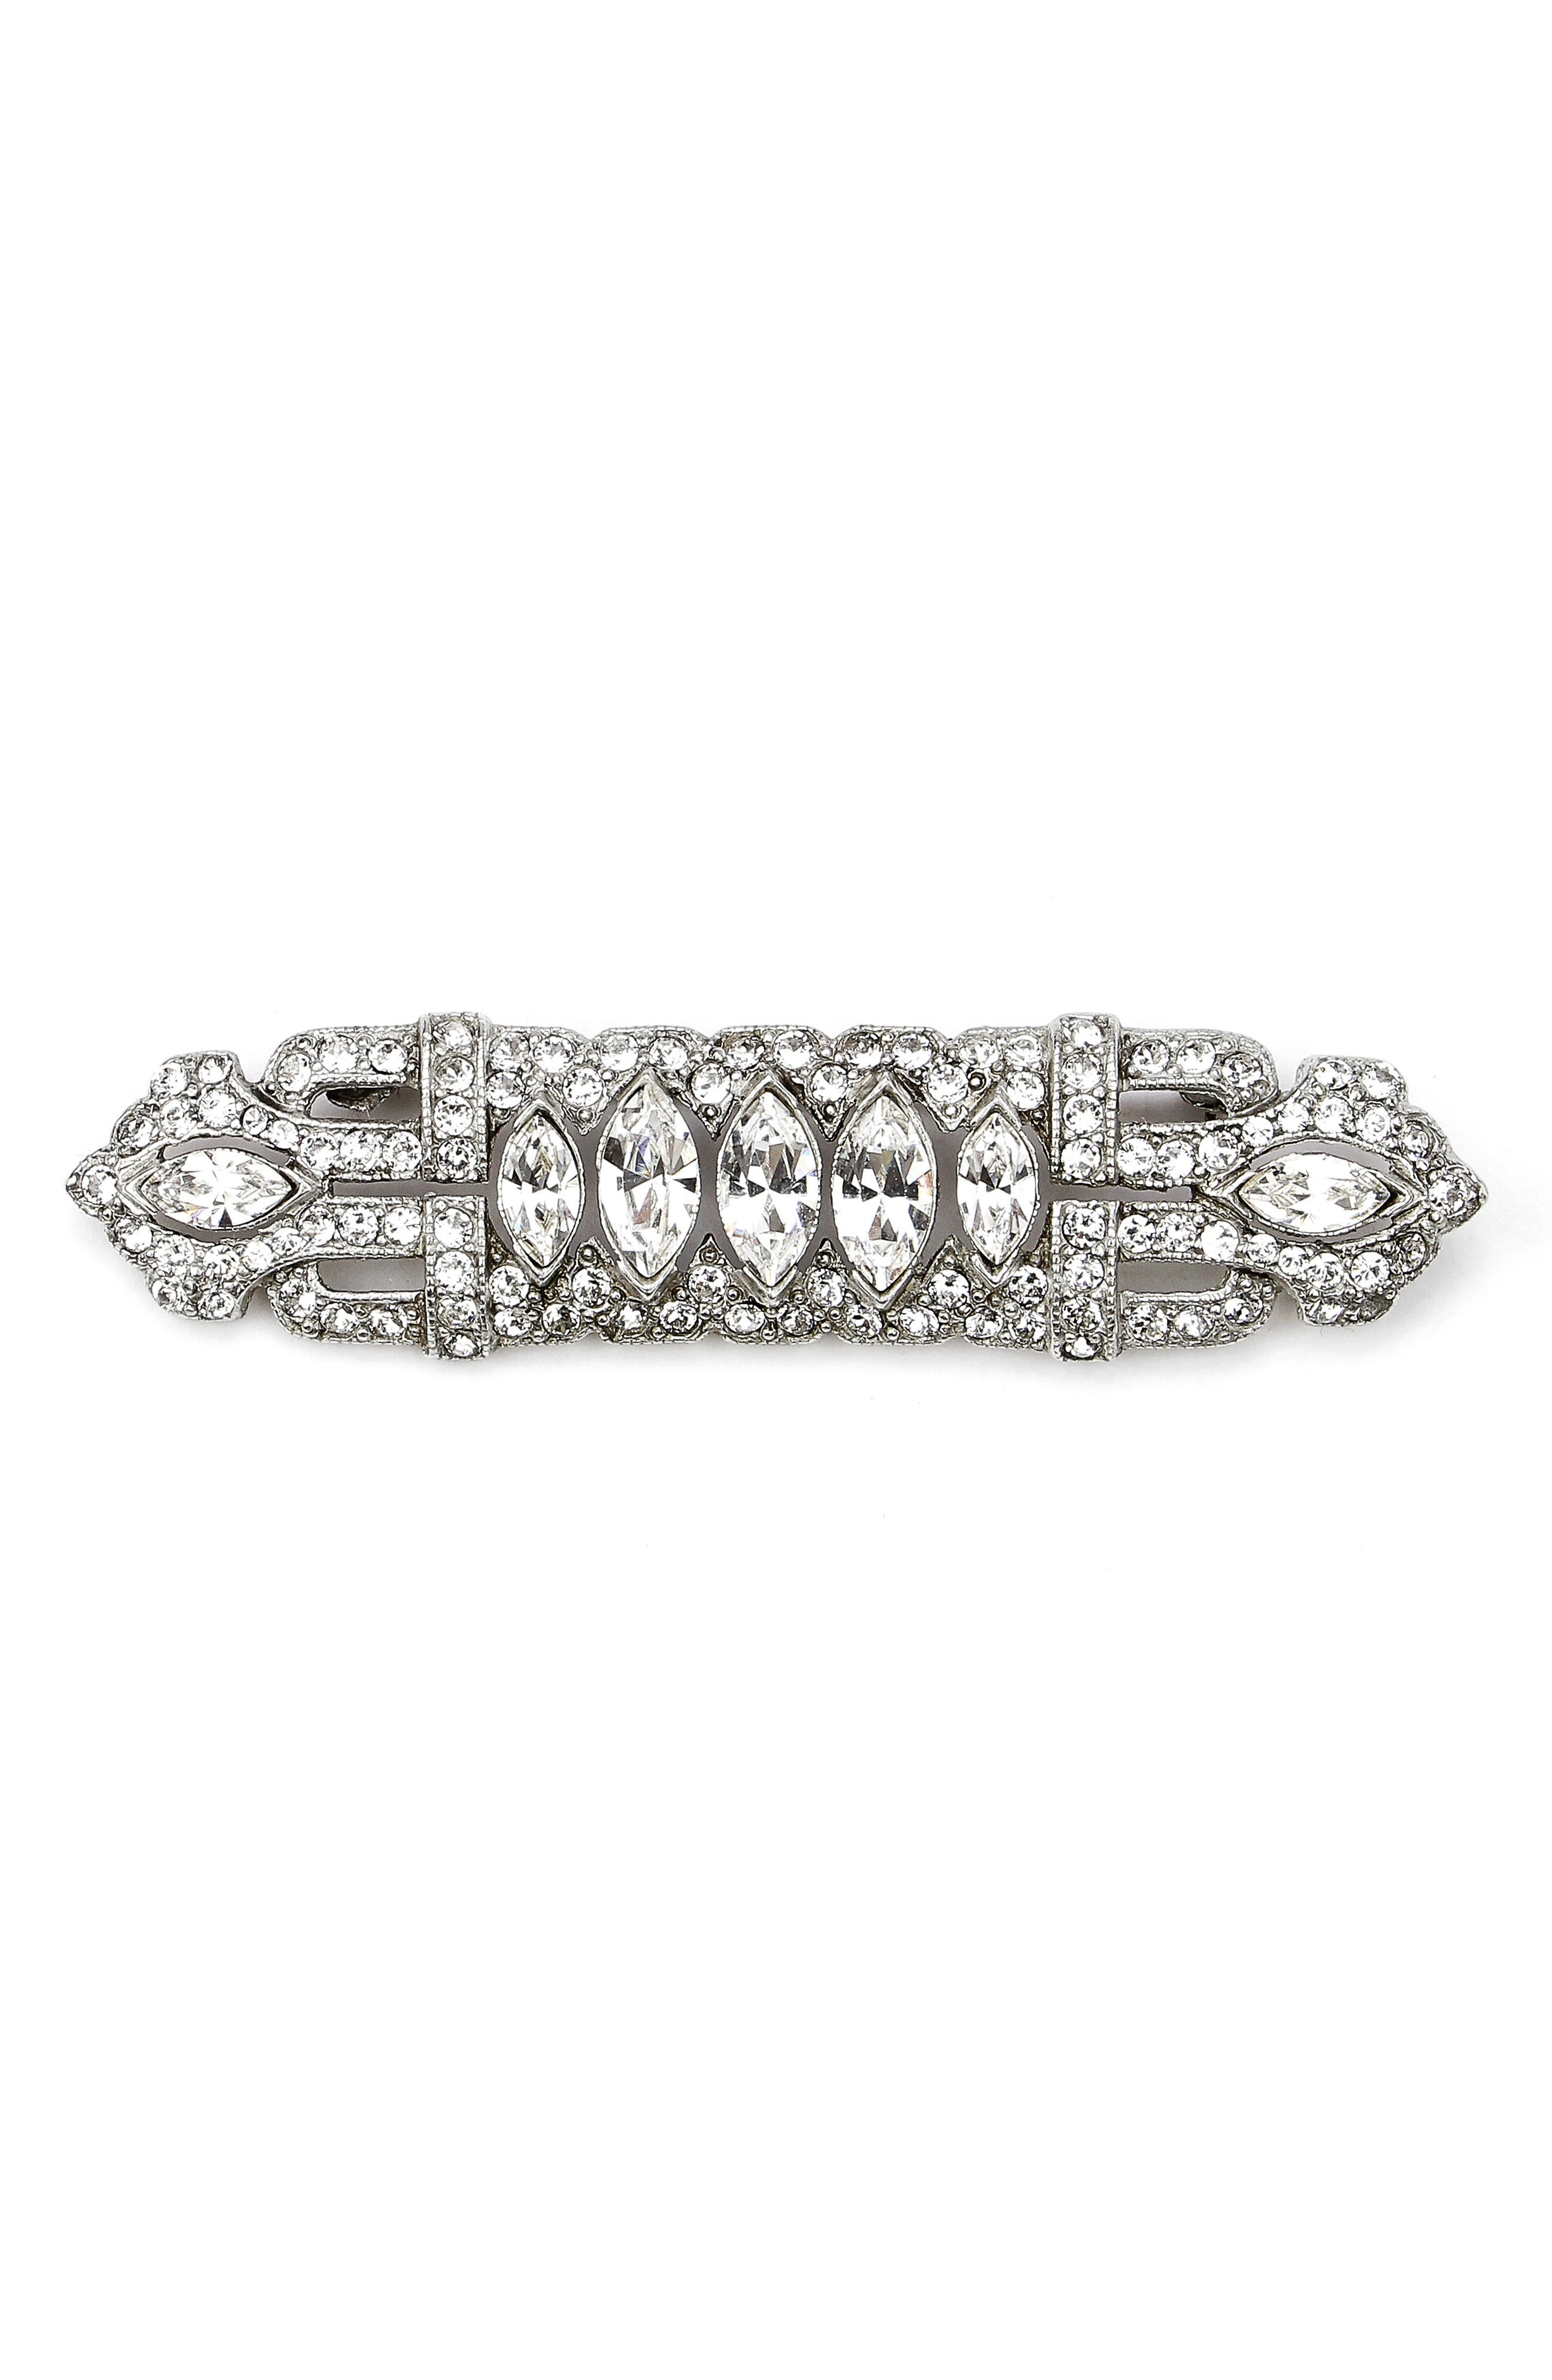 Art Deco Crystal Brooch,                             Main thumbnail 1, color,                             SILVER